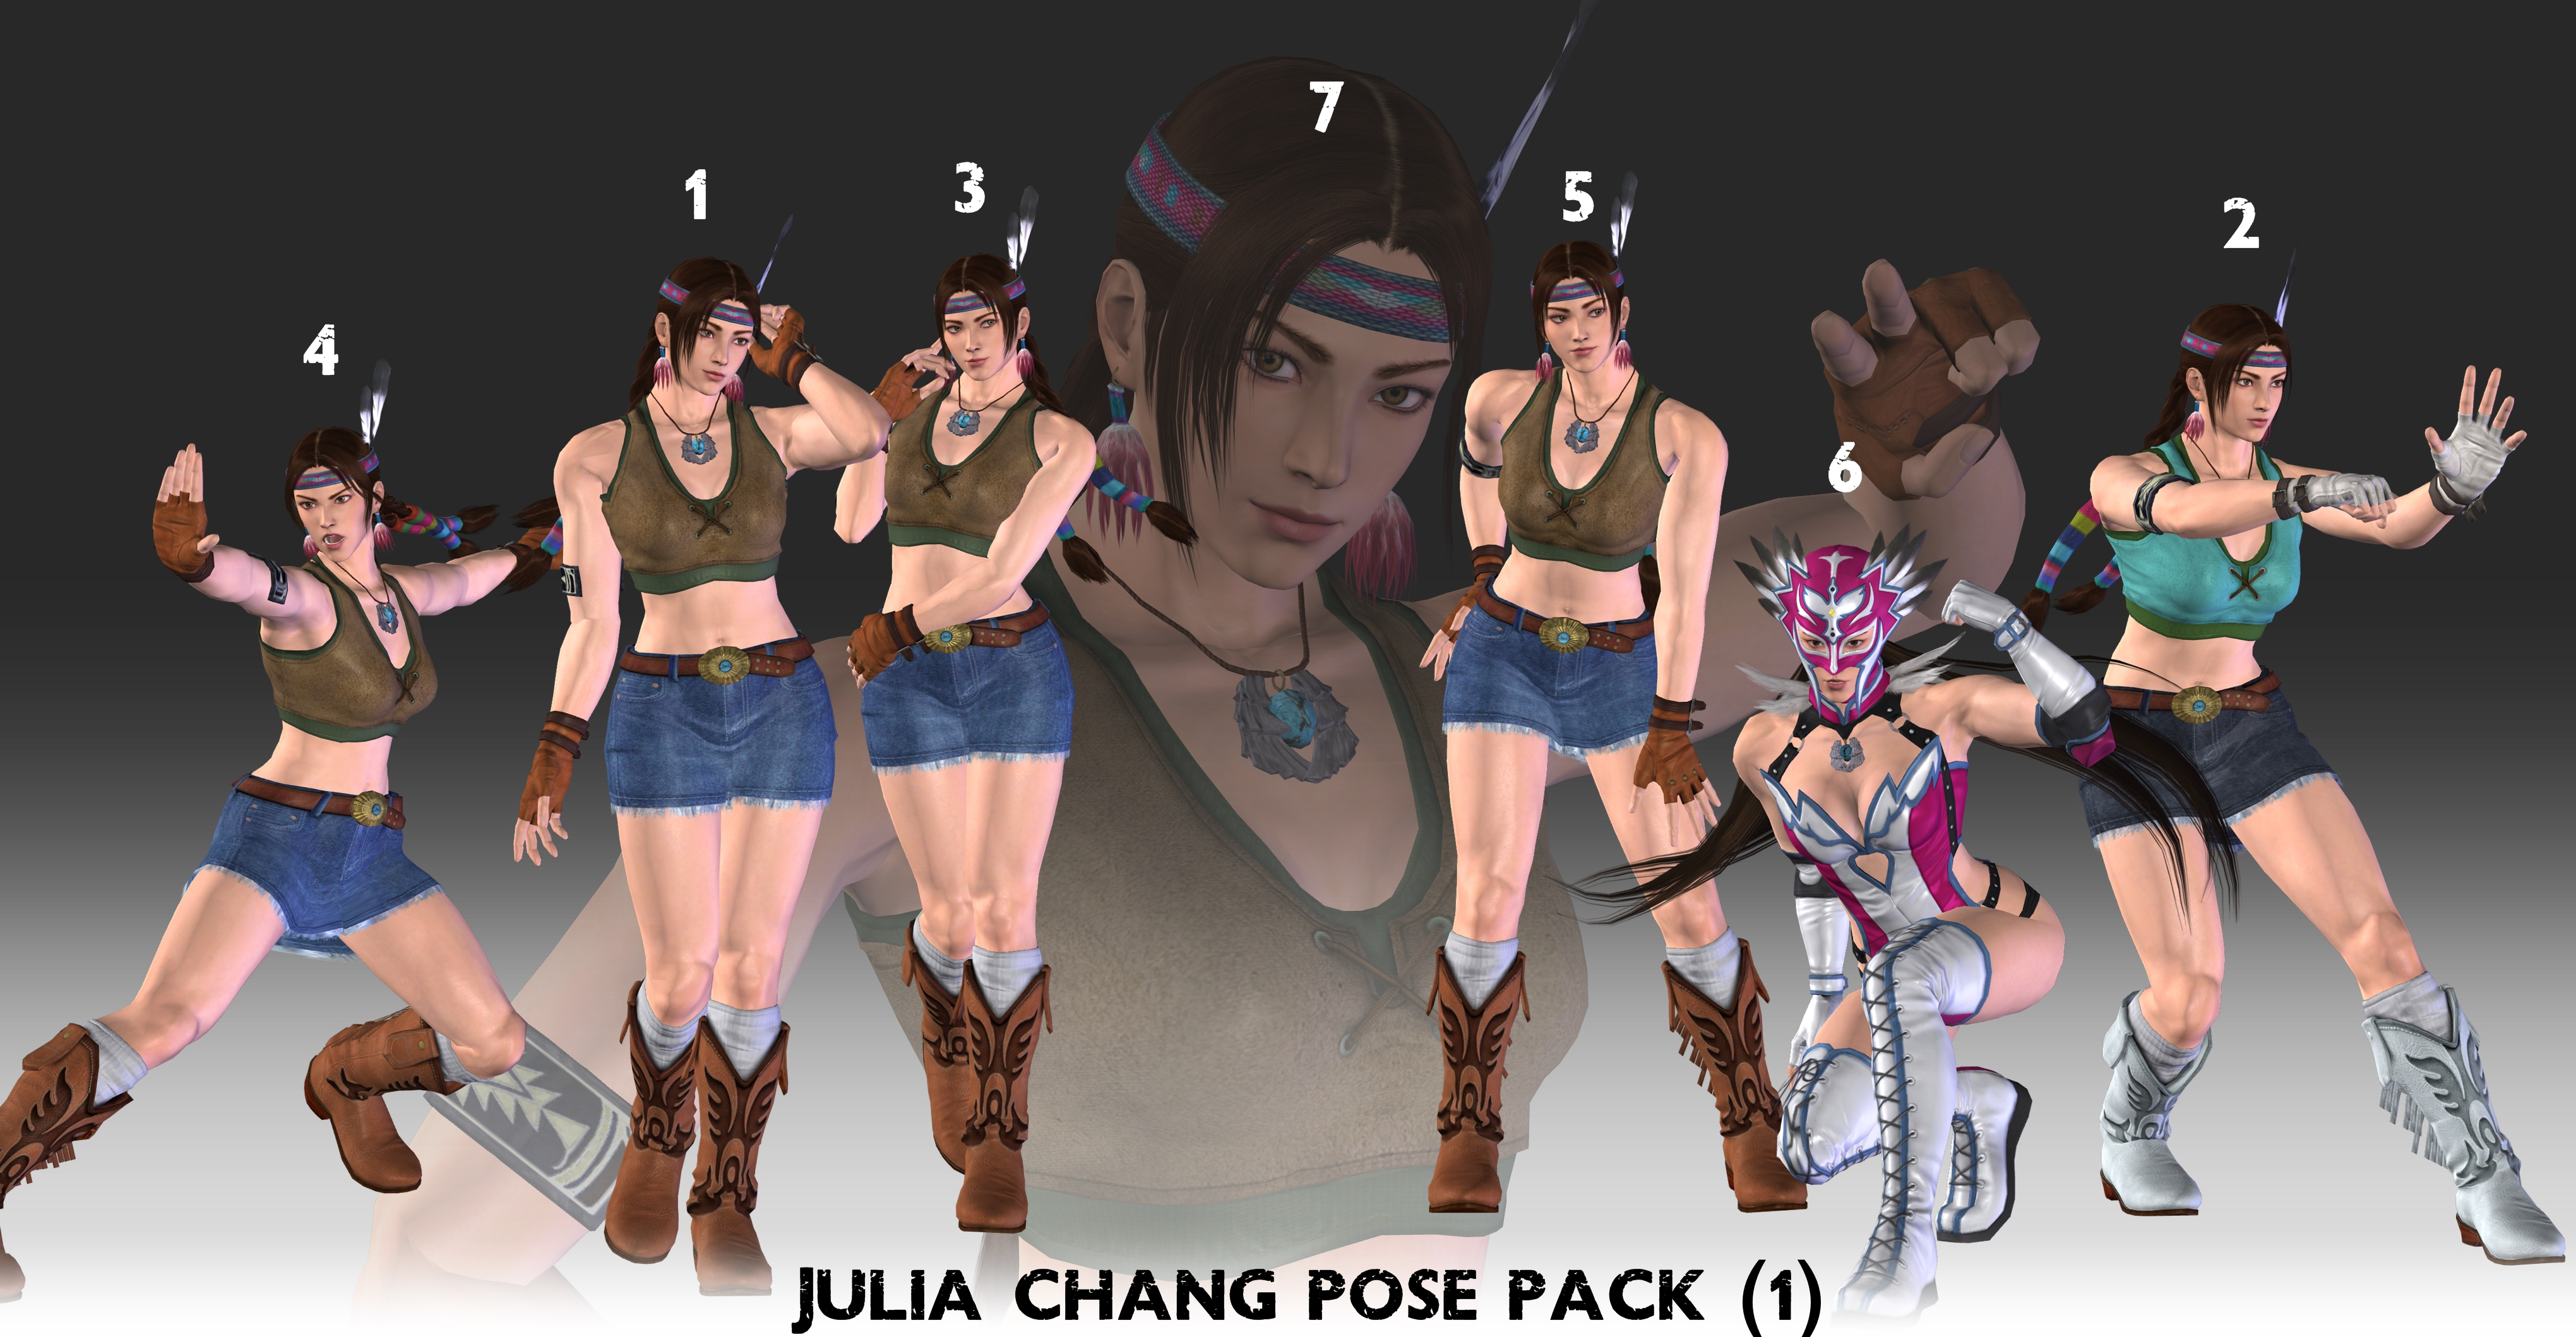 Julia Chang POSE PACK (1) - XPS Download by Pedro-Croft